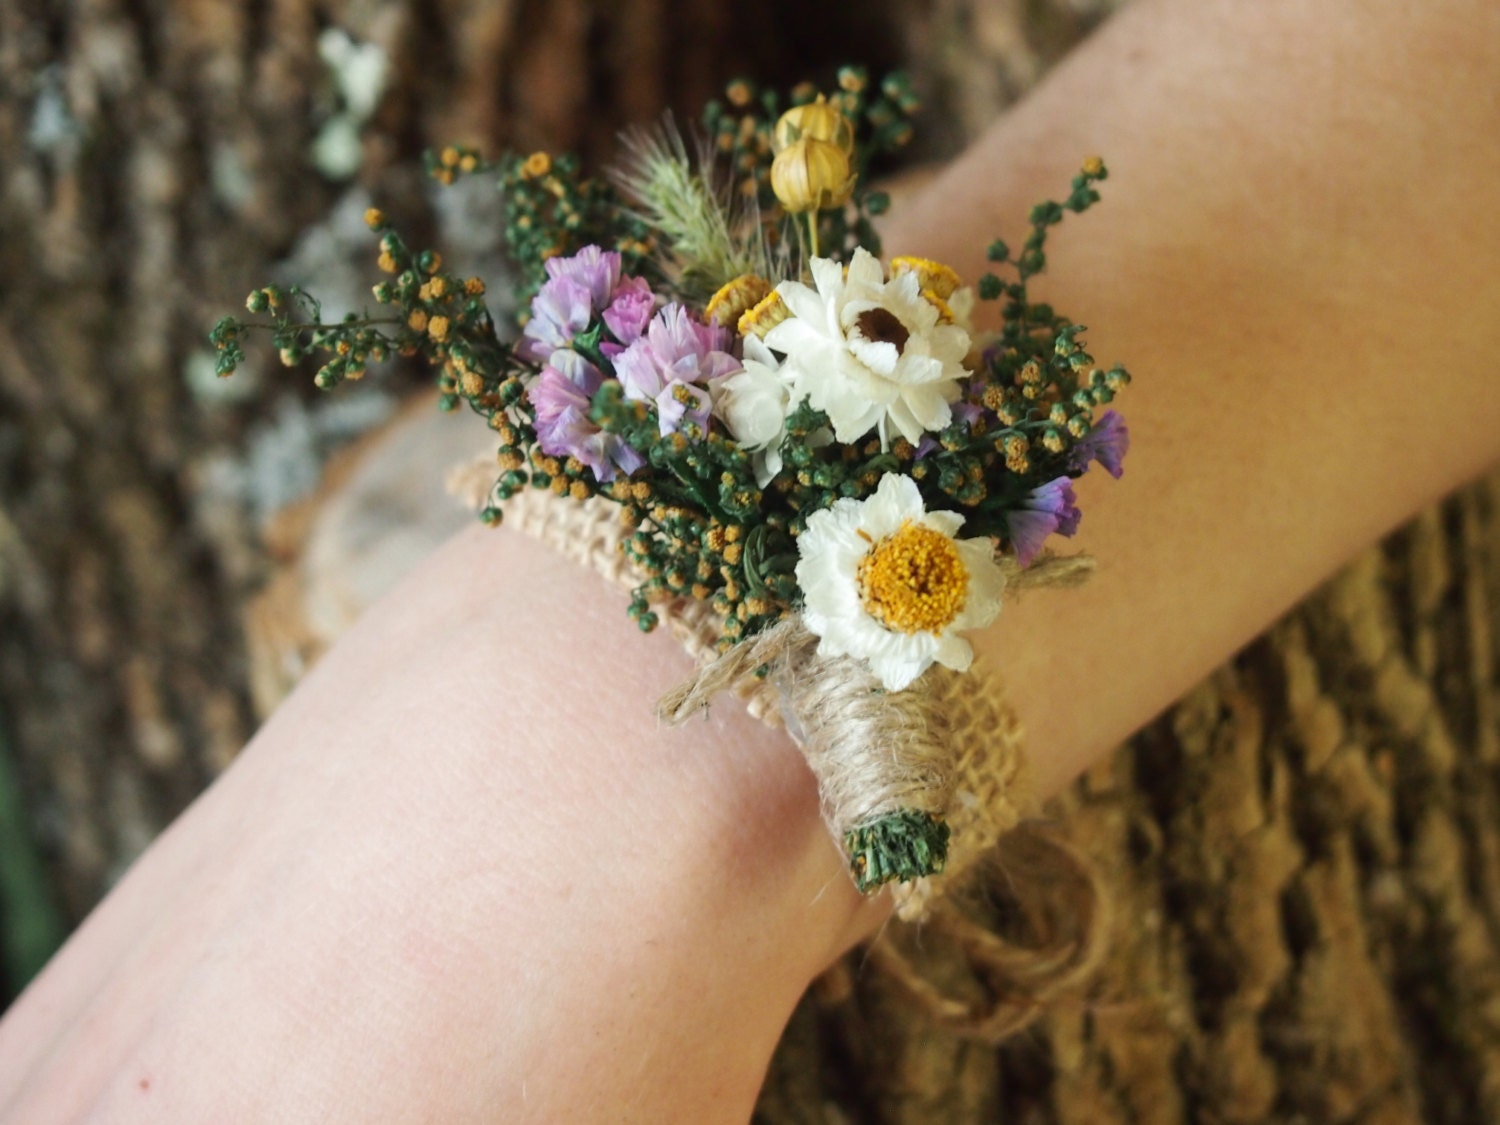 Wrist Corsage: Wrist CORSAGE Dried Flowers Simple And Dainty Perfect